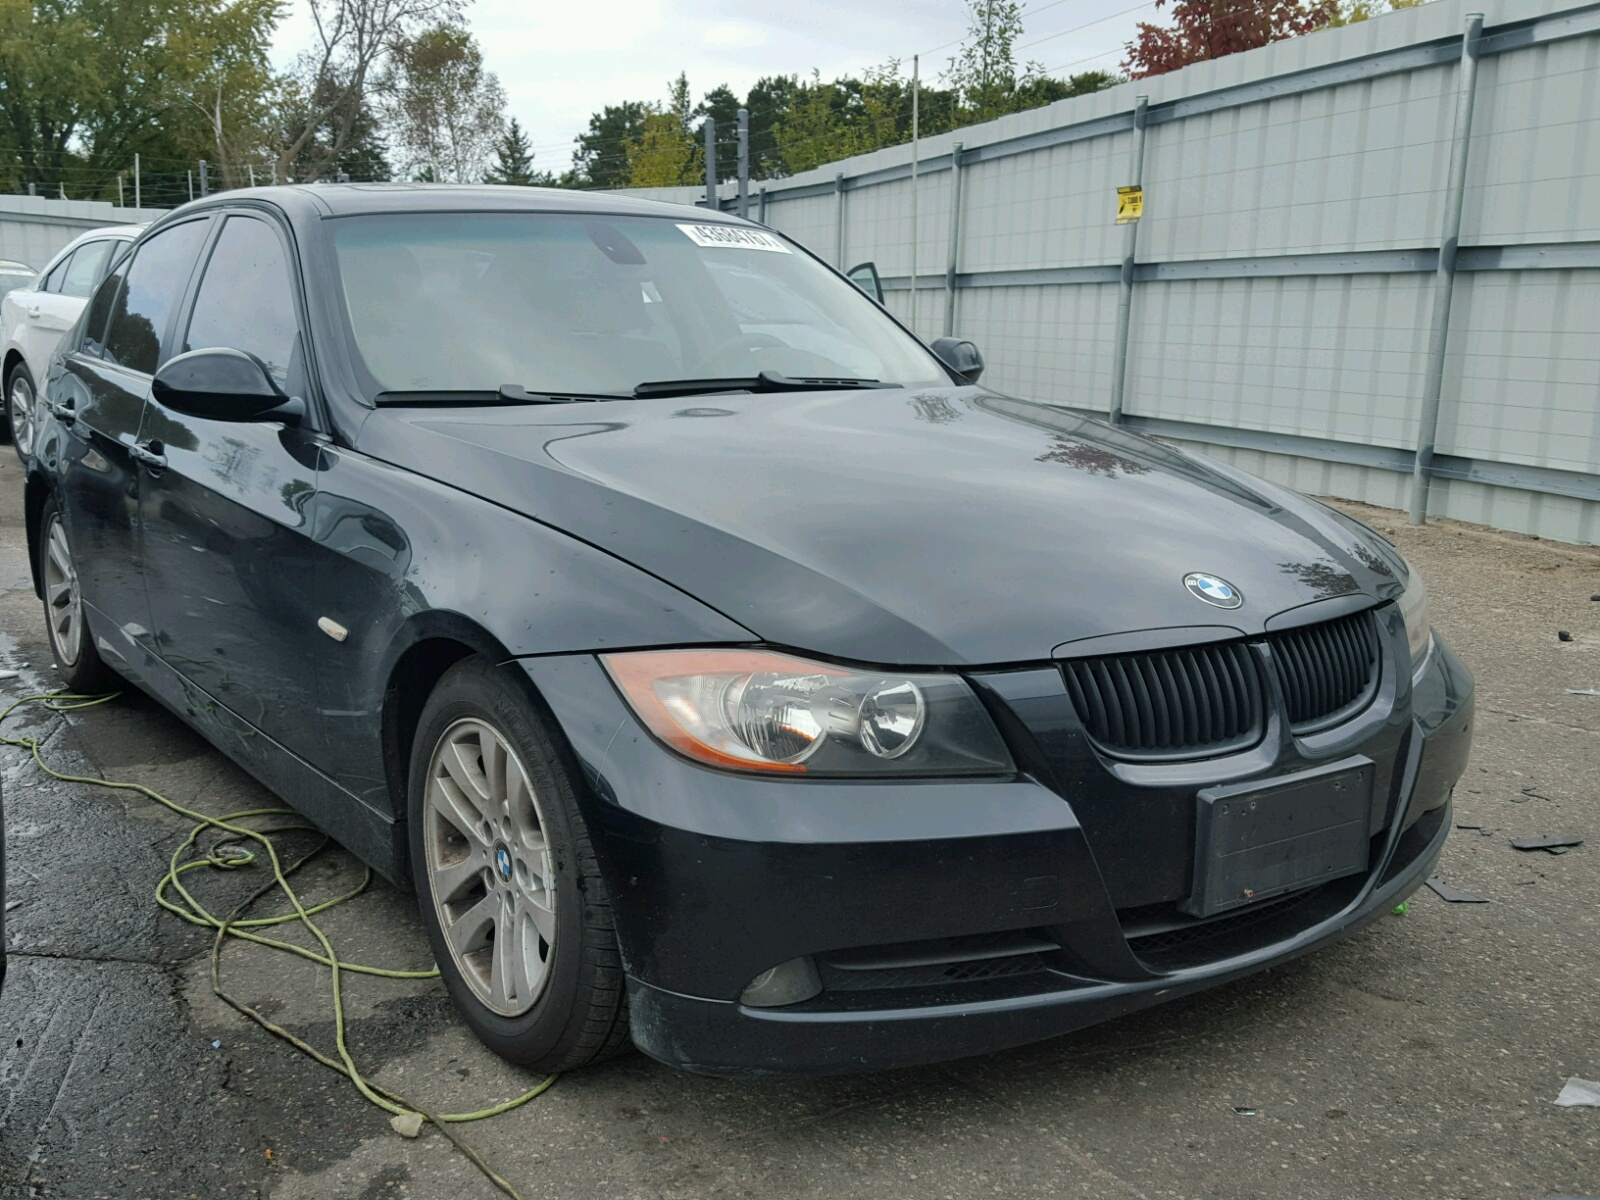 Auto Auction Ended On VIN WBAGJDD BMW IL In IN - 2007 bmw 750il